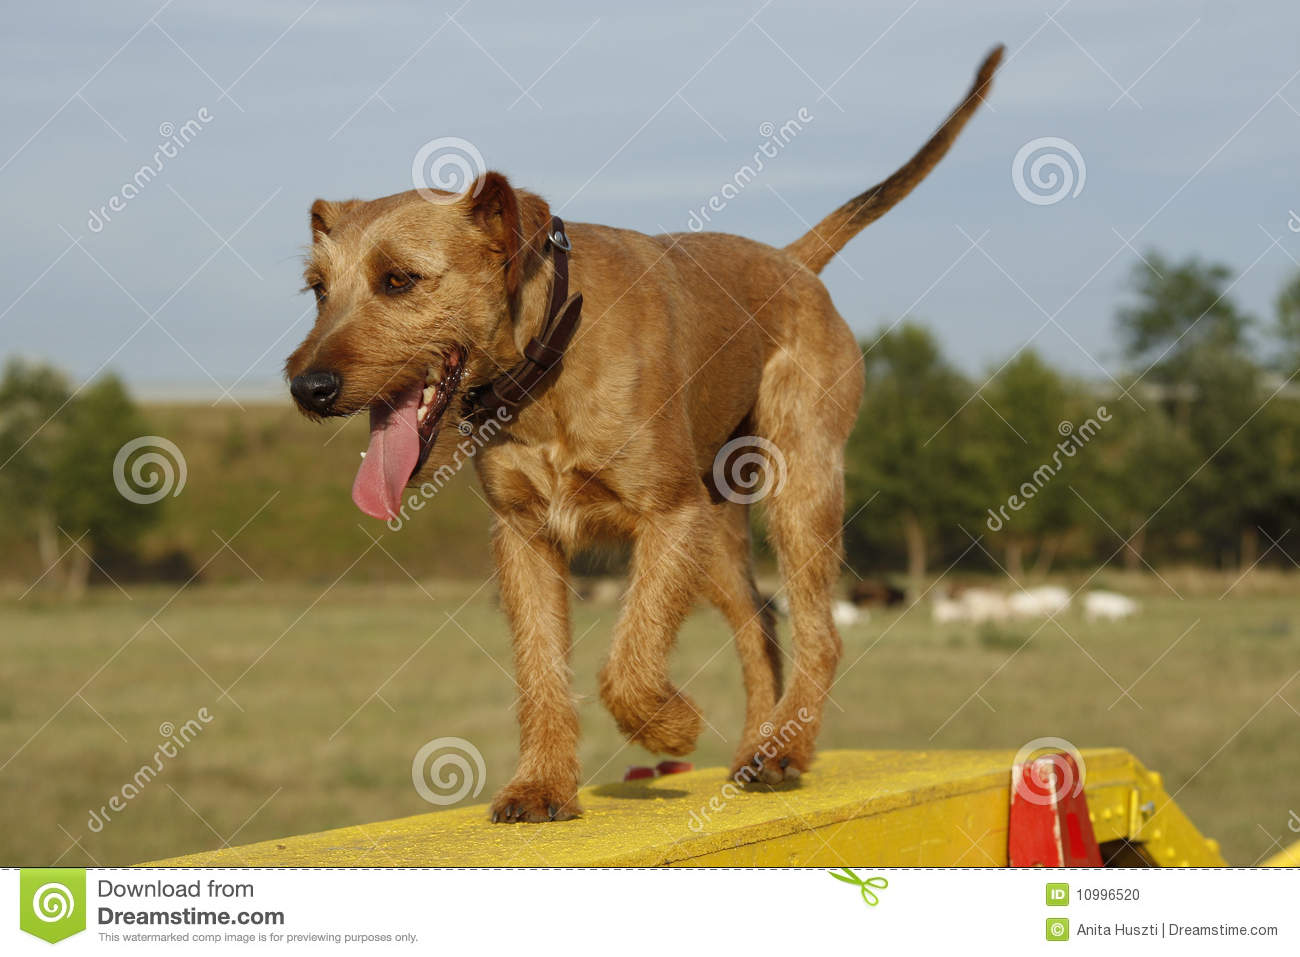 how to make a dog walk for agility